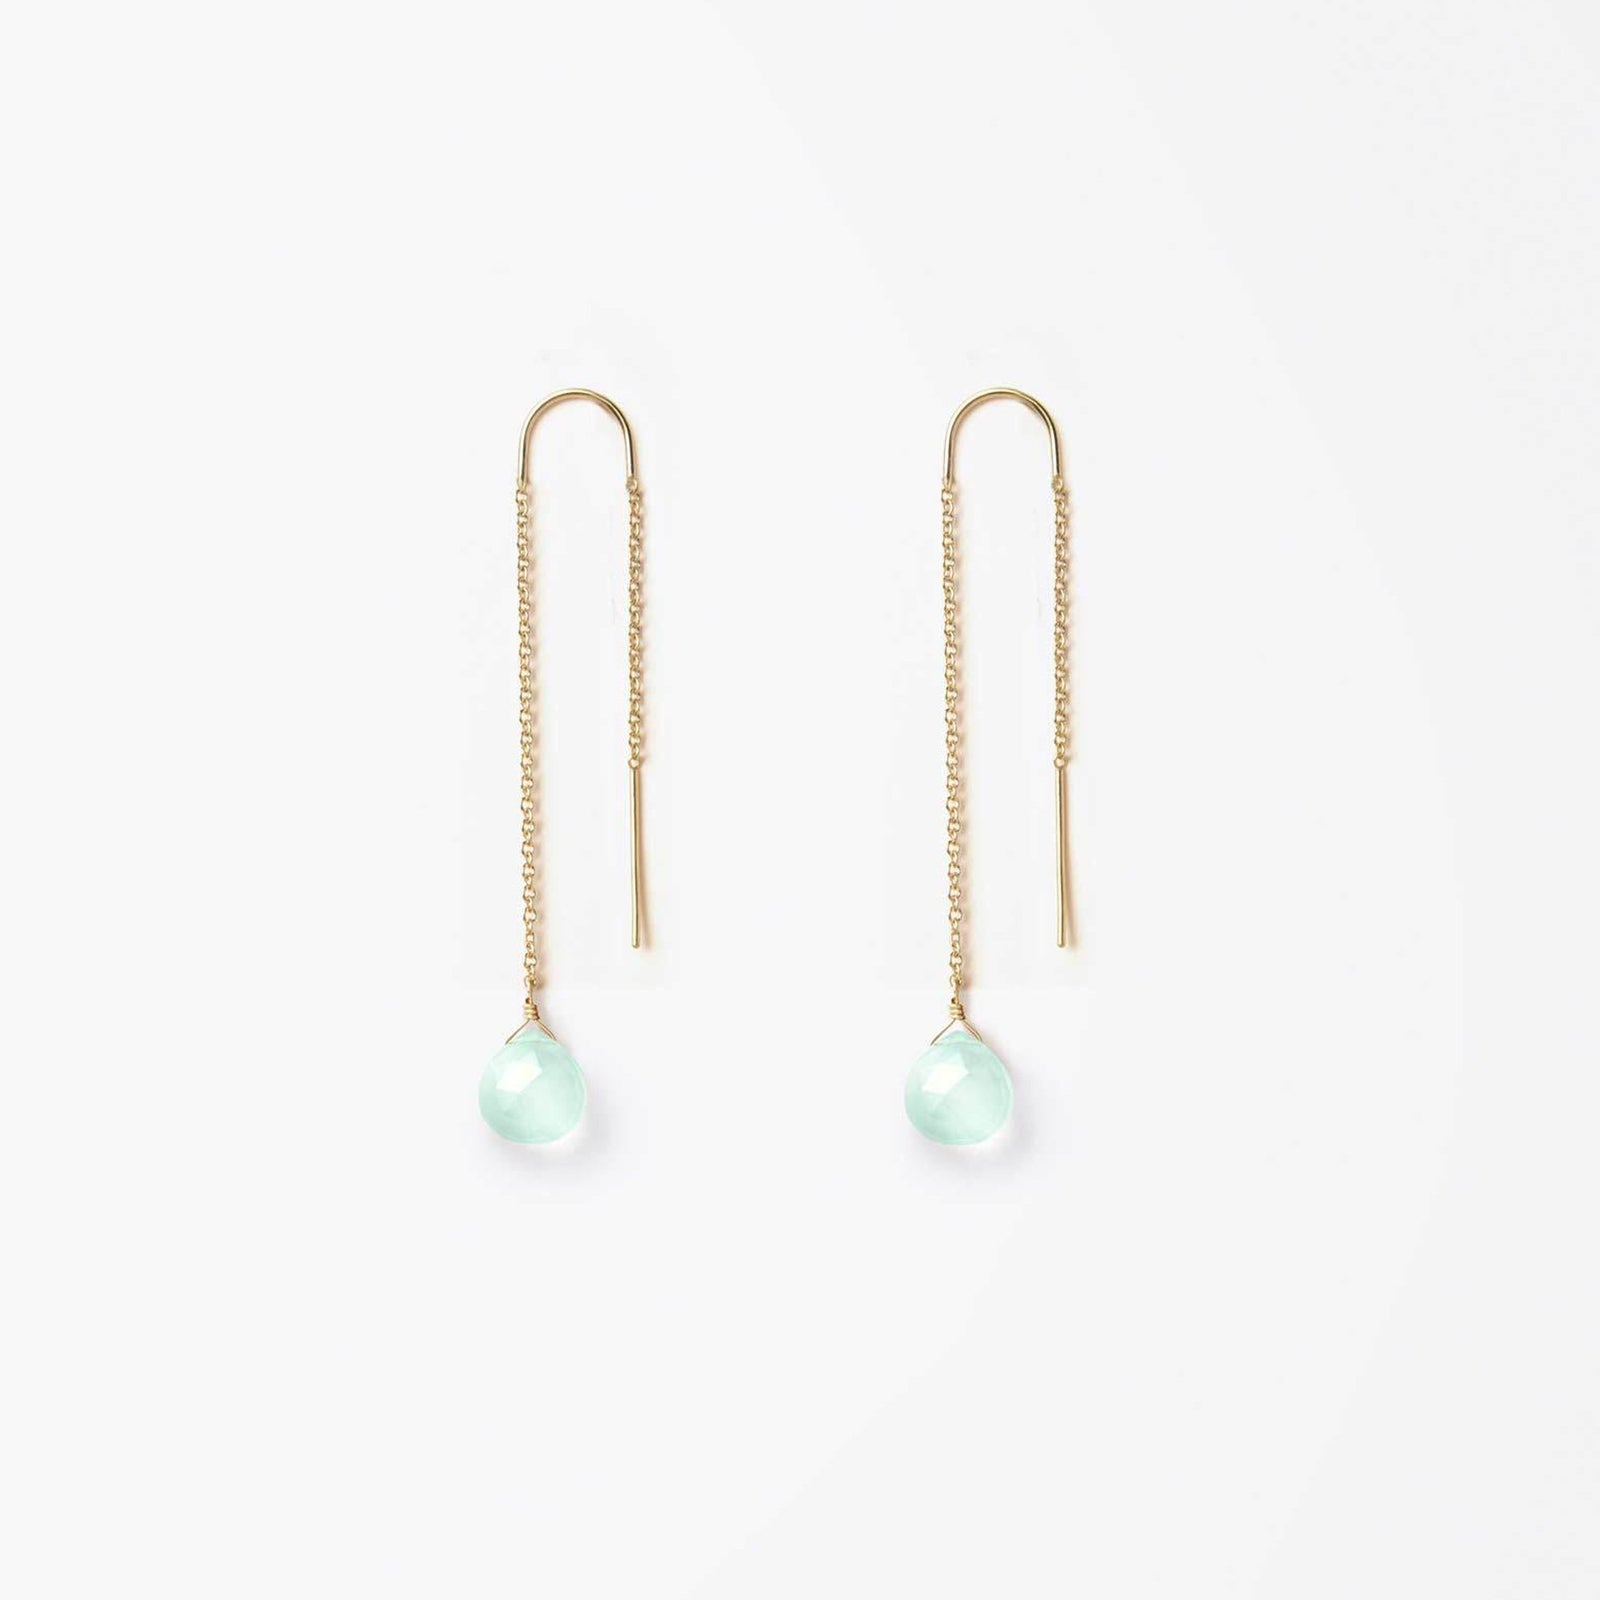 waterfall earring | sea glass chalcedony